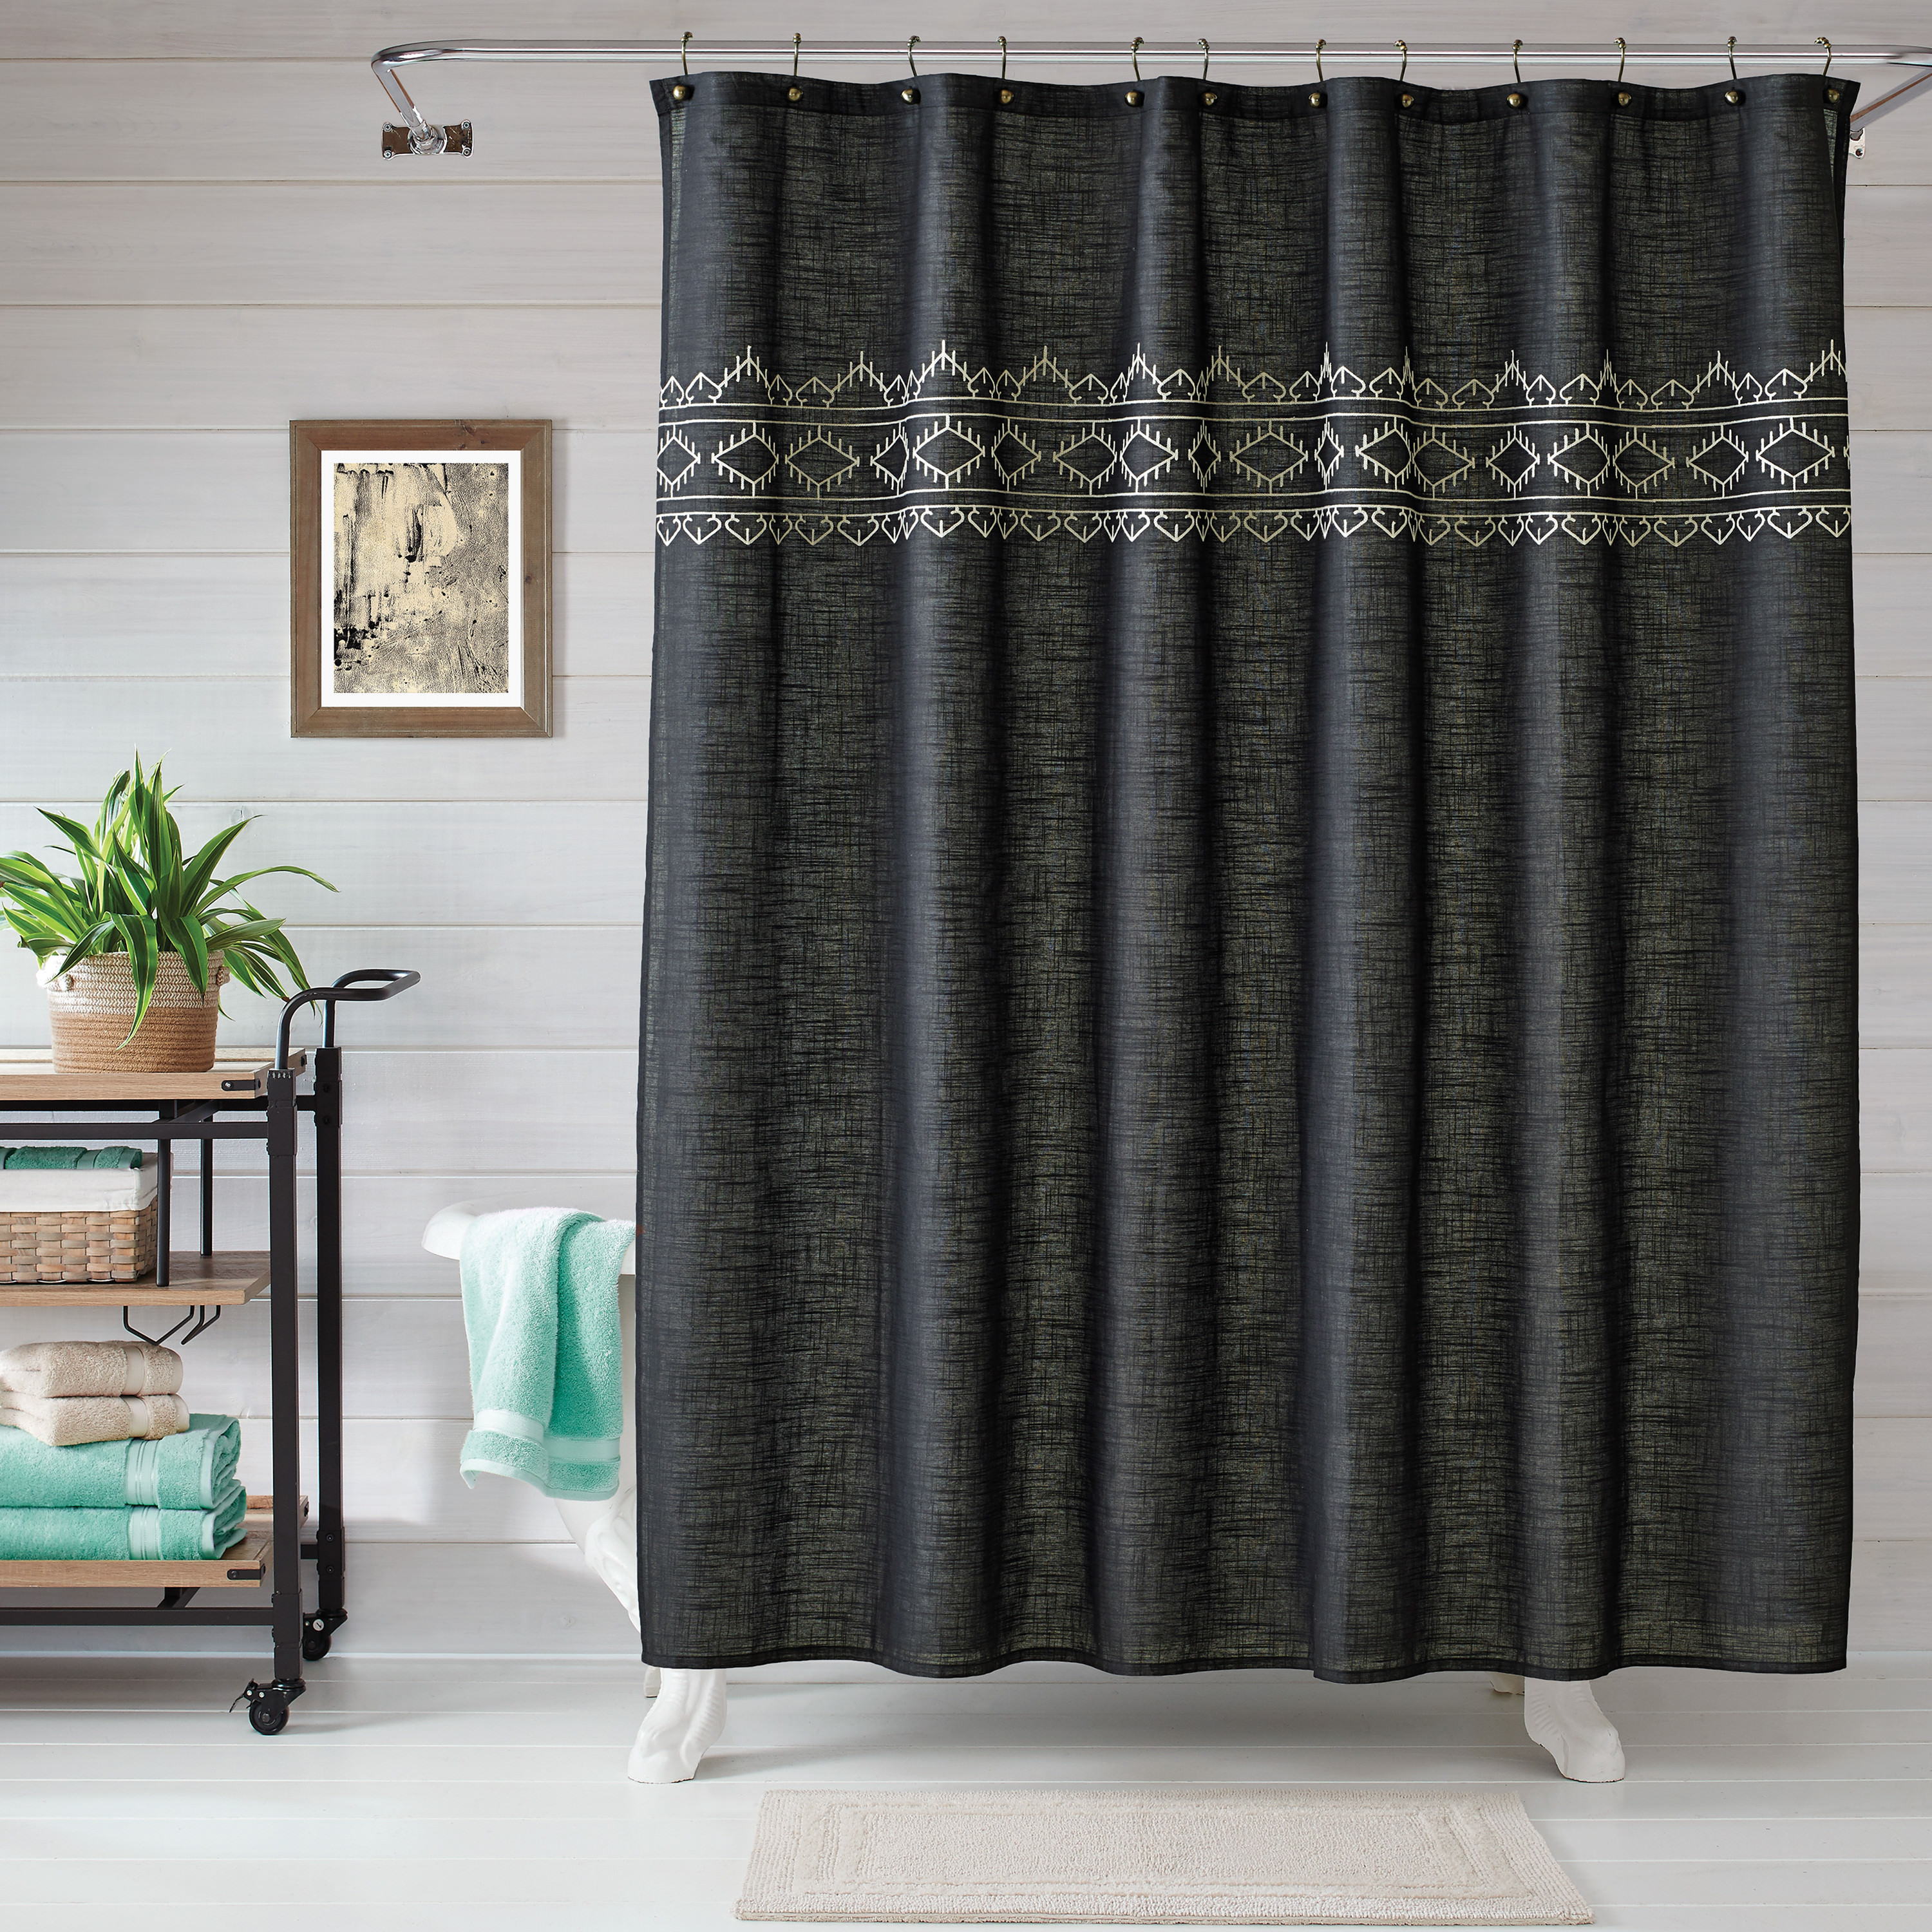 Better Homes and Gardens Wandering Ikat Shower Curtain